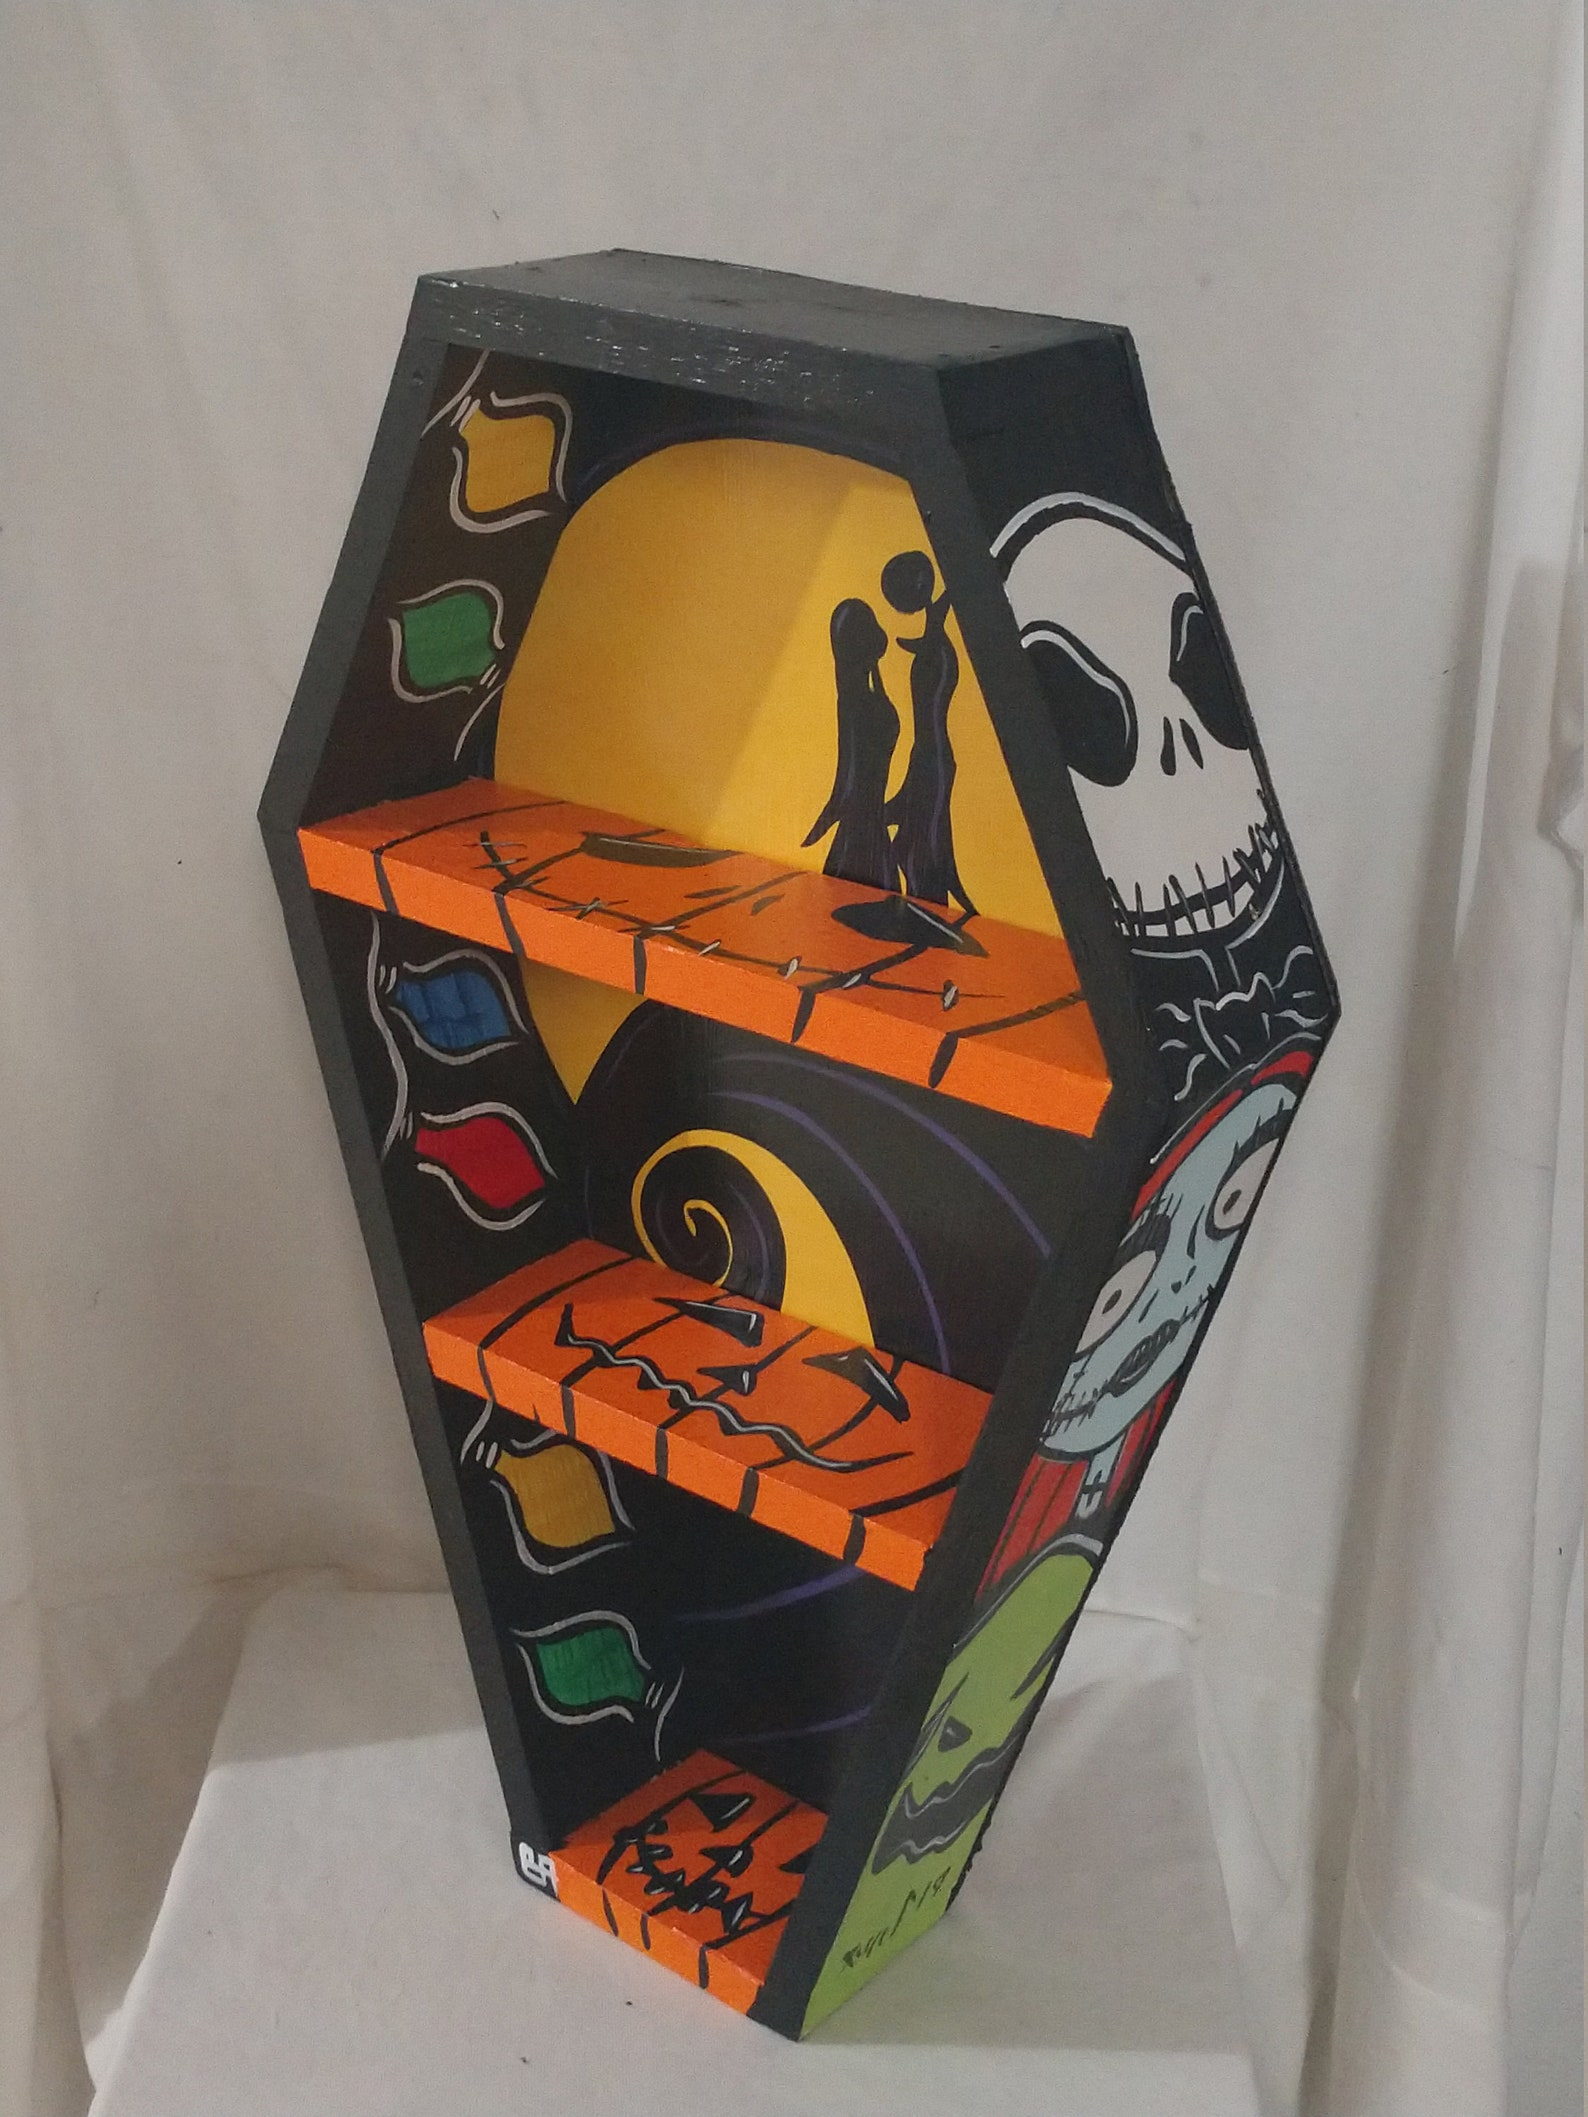 Nightmare Before Christmas Coffin Tabletop and Wall Shelves by Blackened Art Design